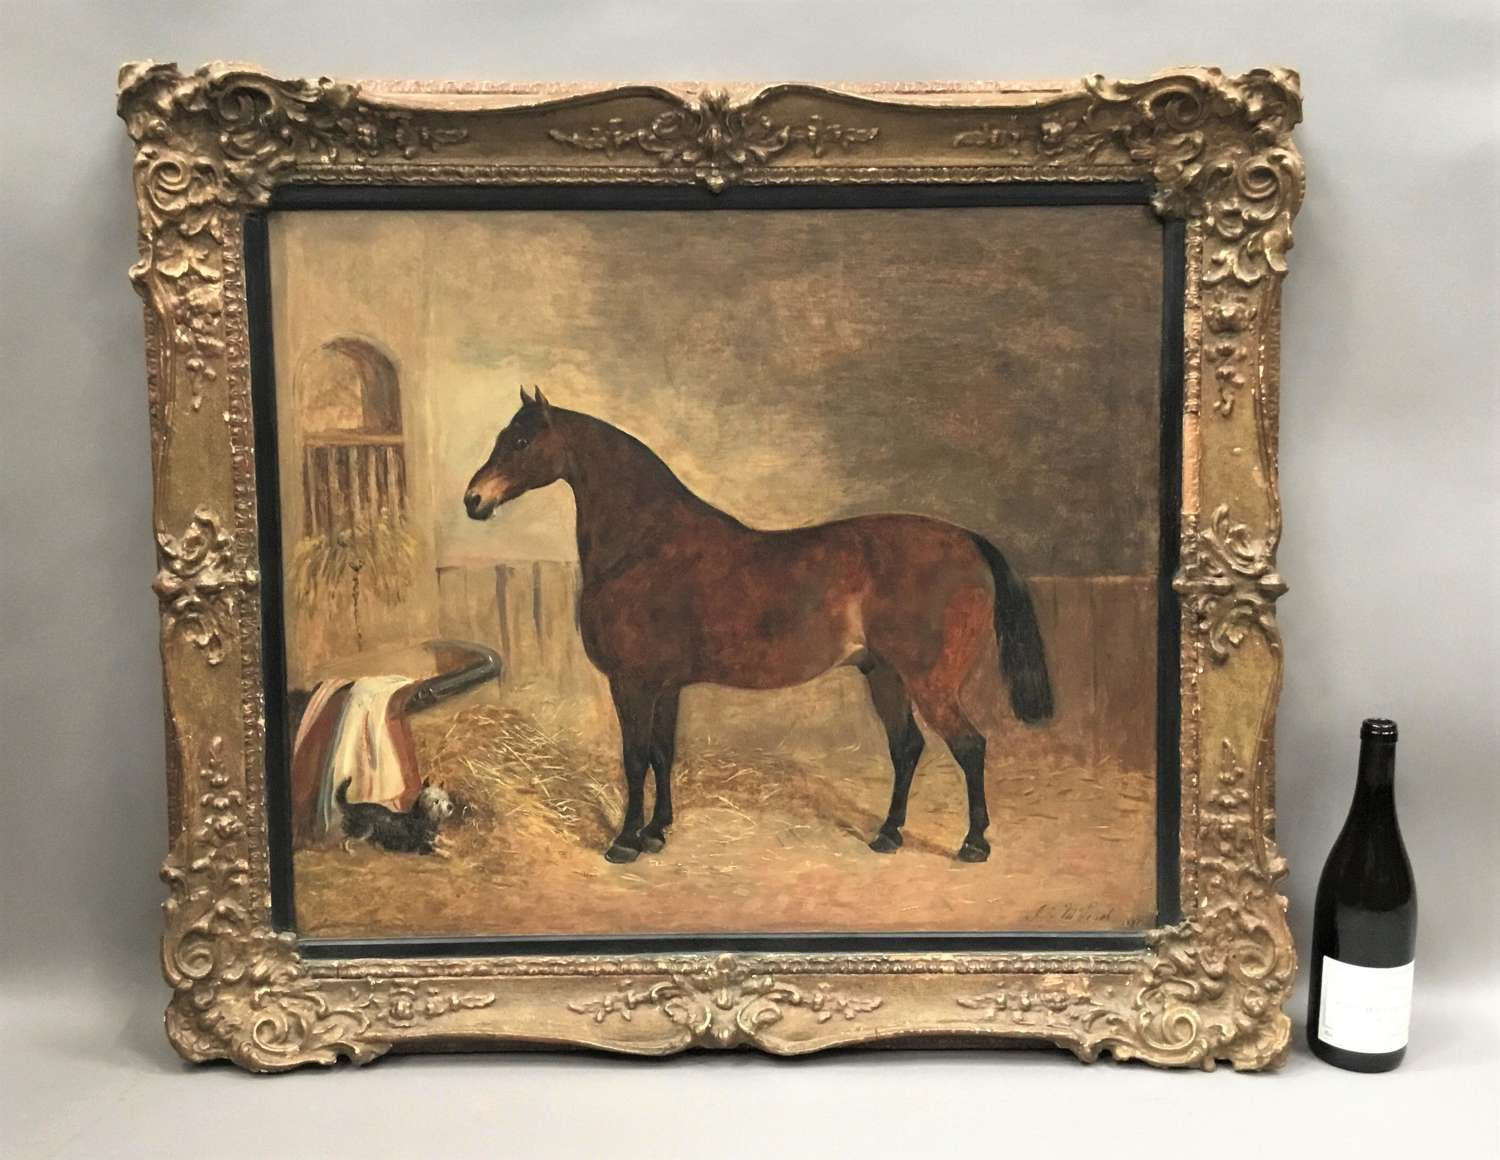 C19th oil painting of a horse and terrier by John McLeod